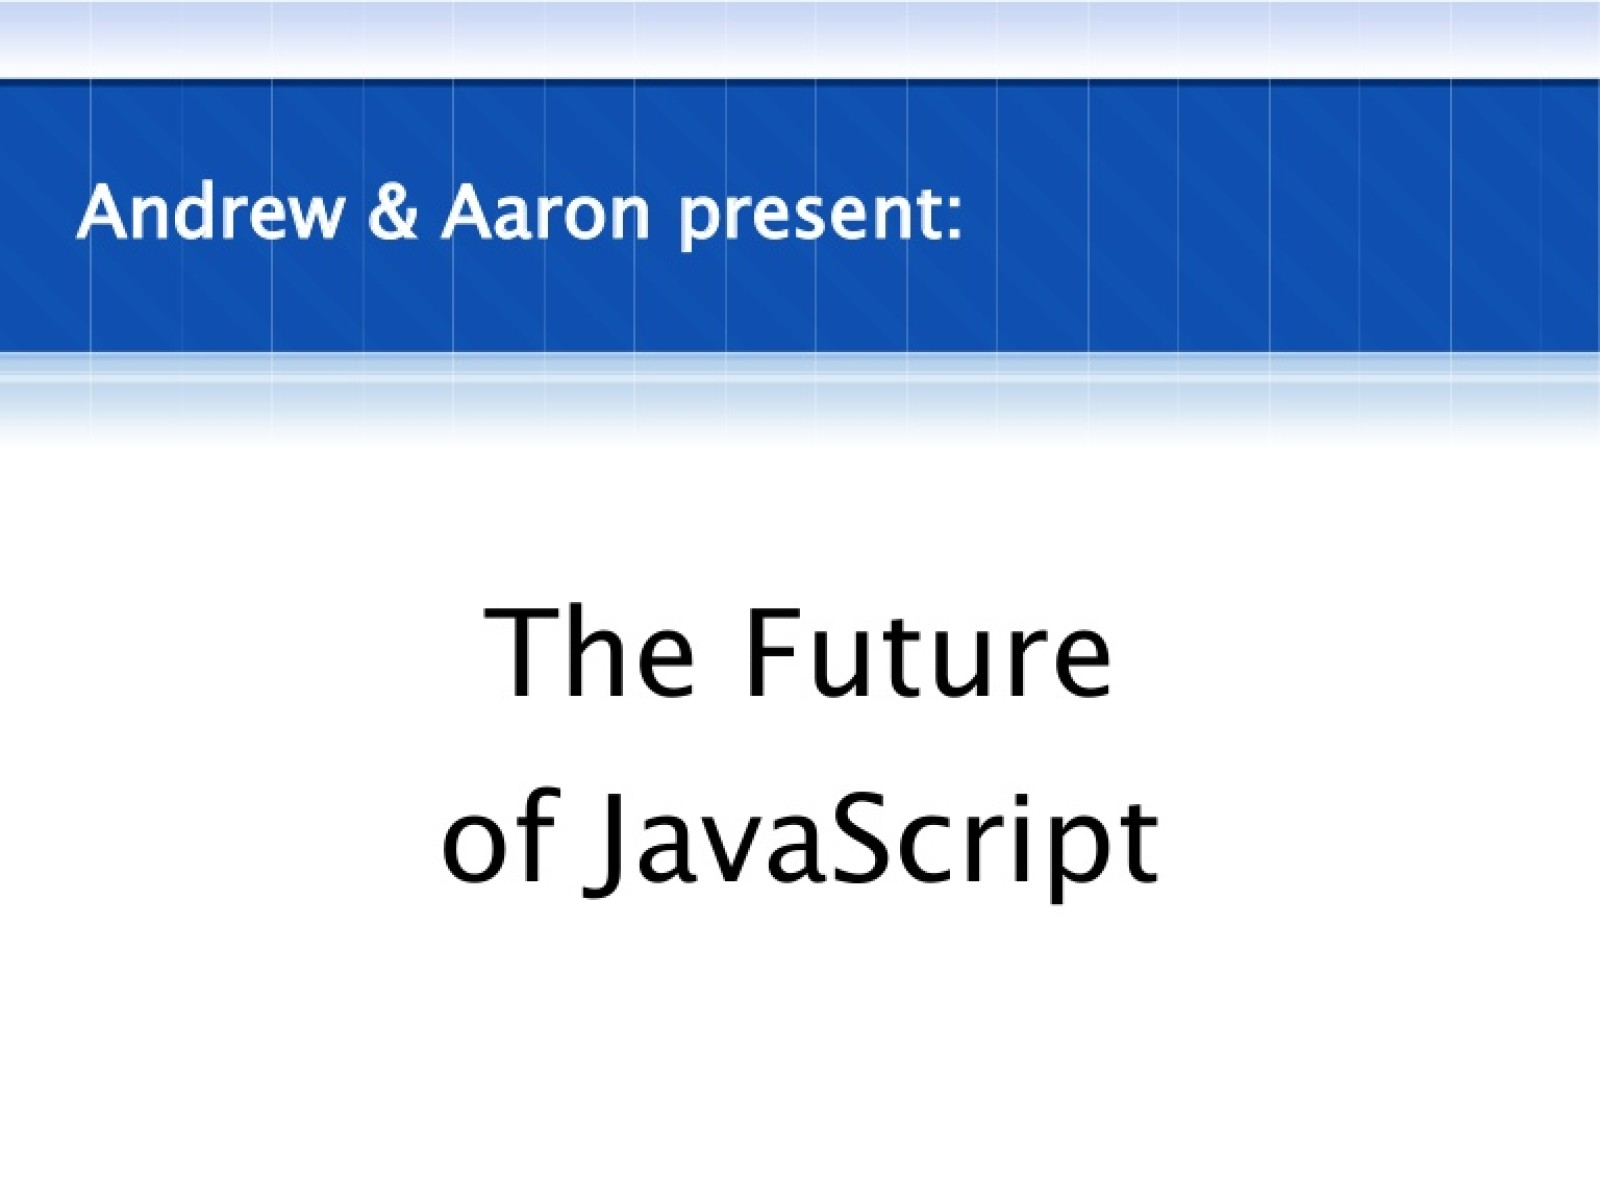 The Future of JavaScript